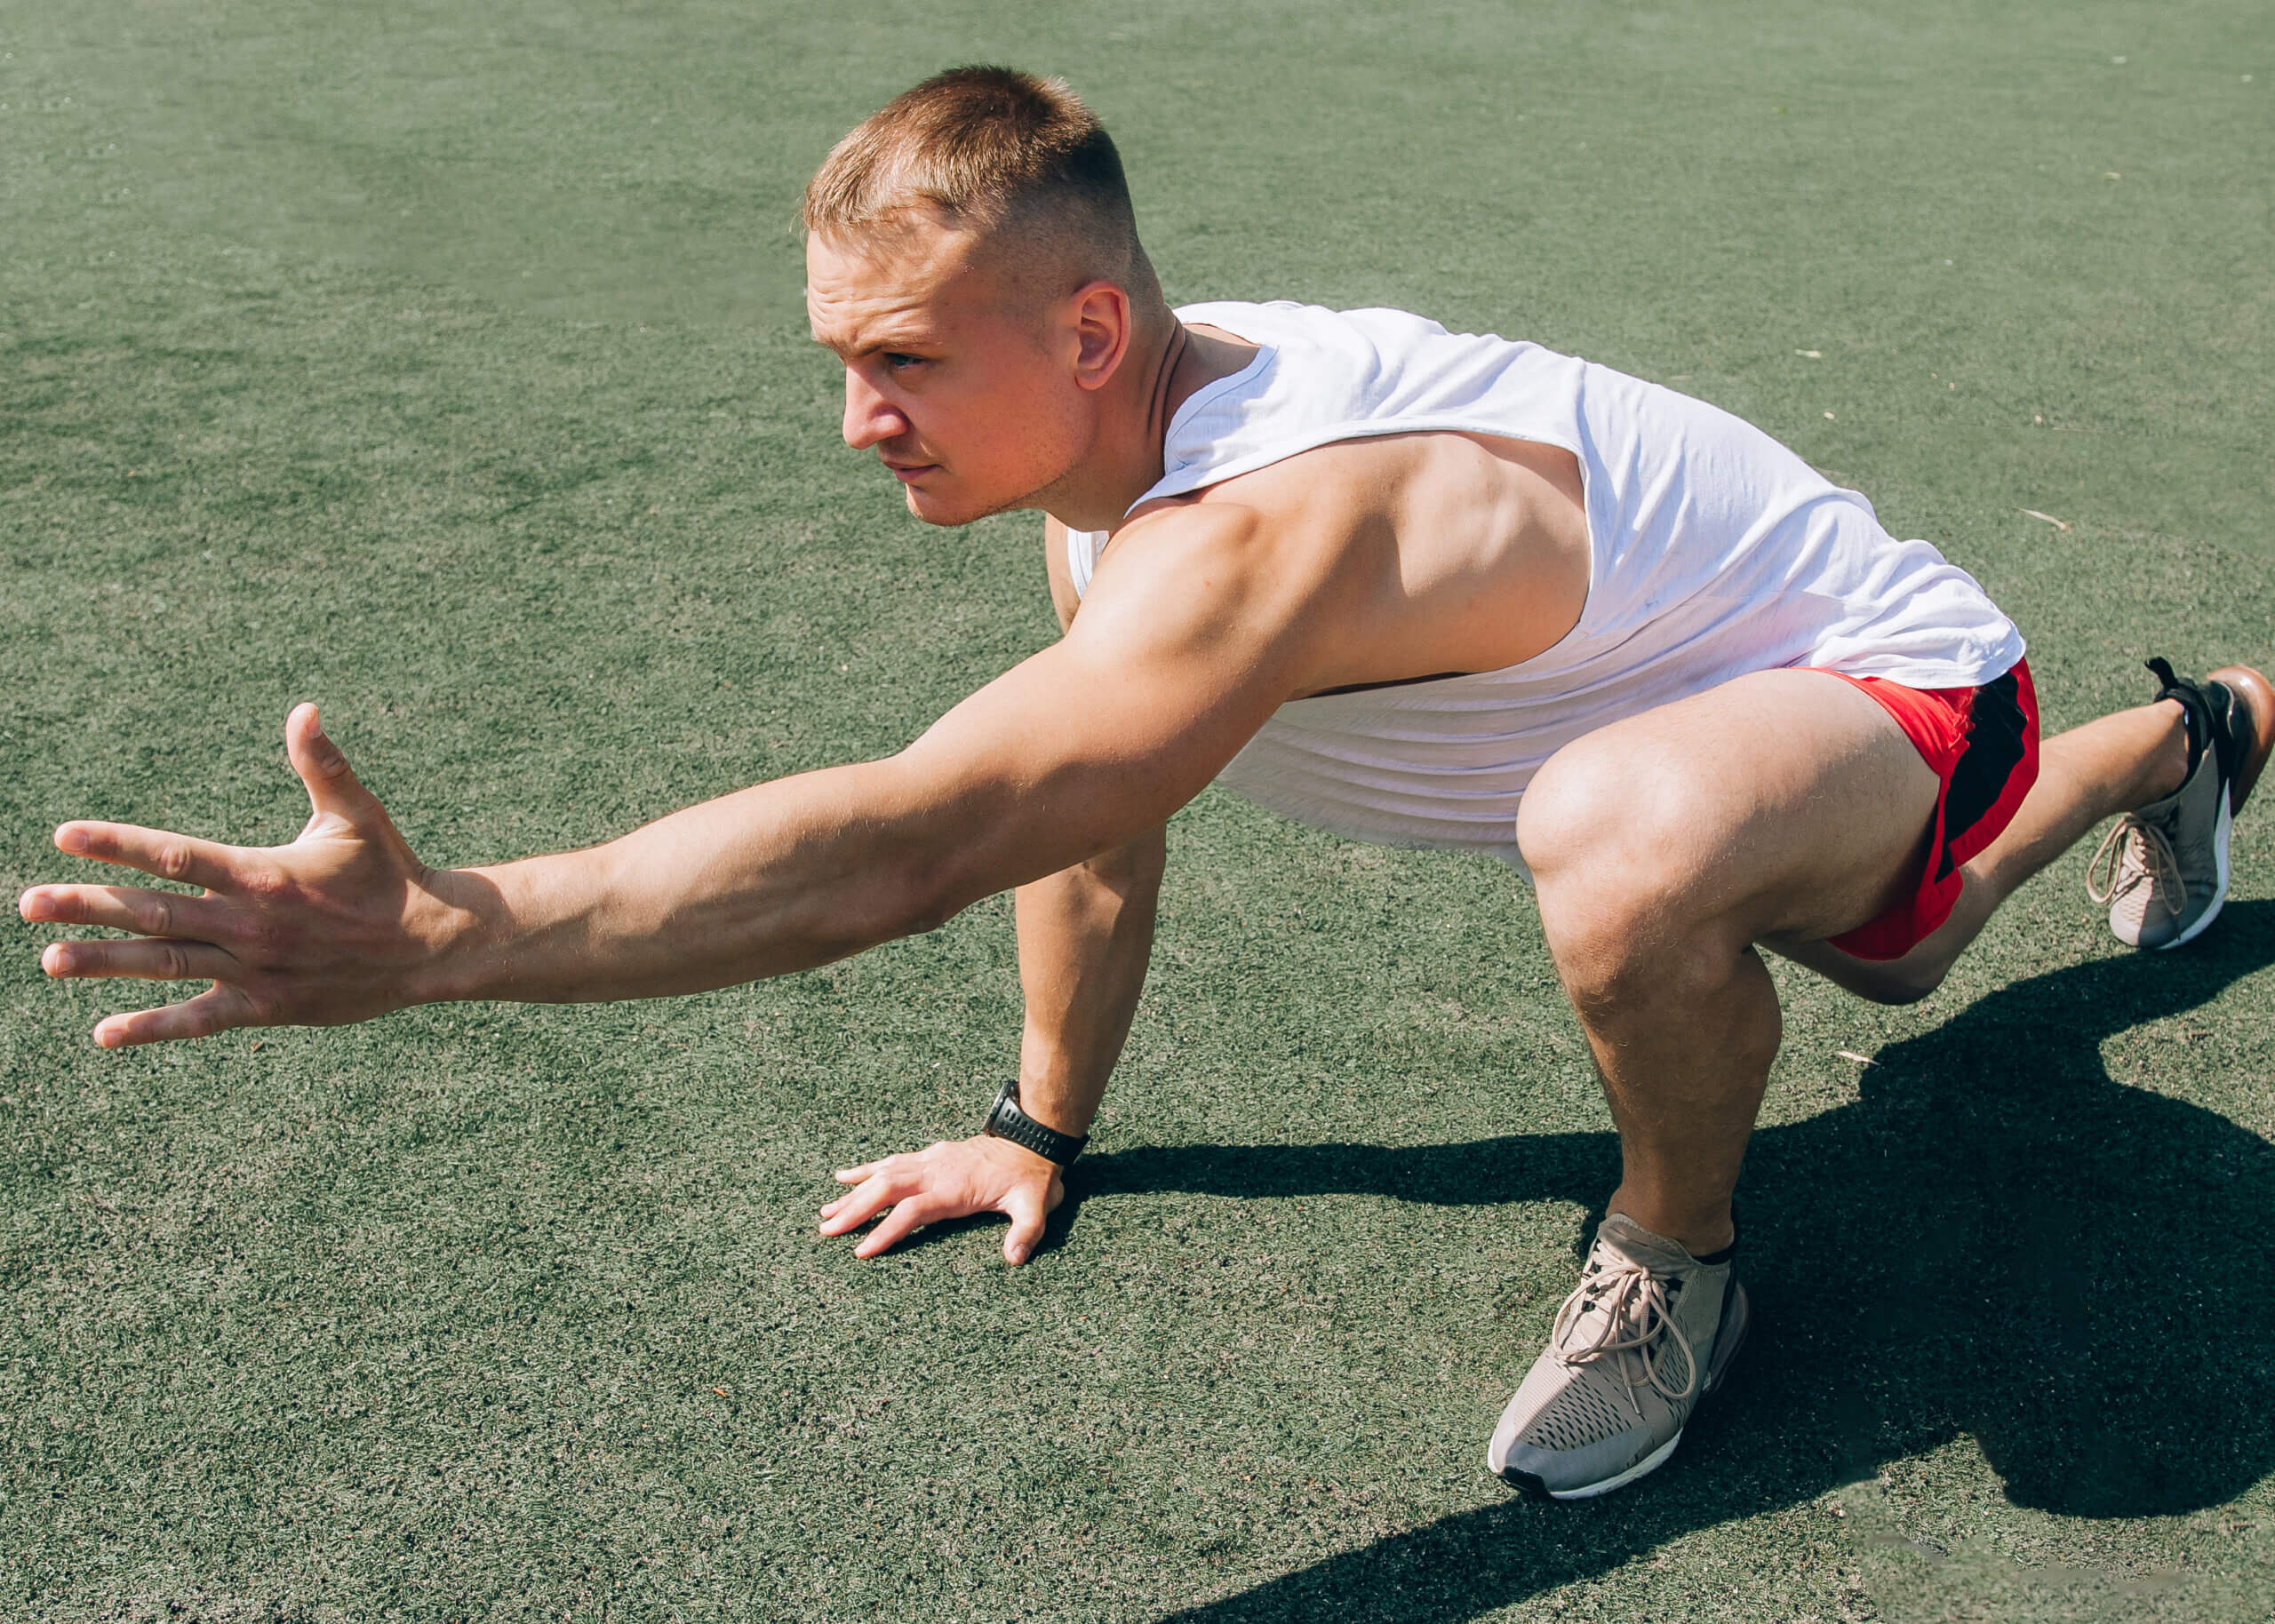 an image of a man doing sports yoga on a turf field